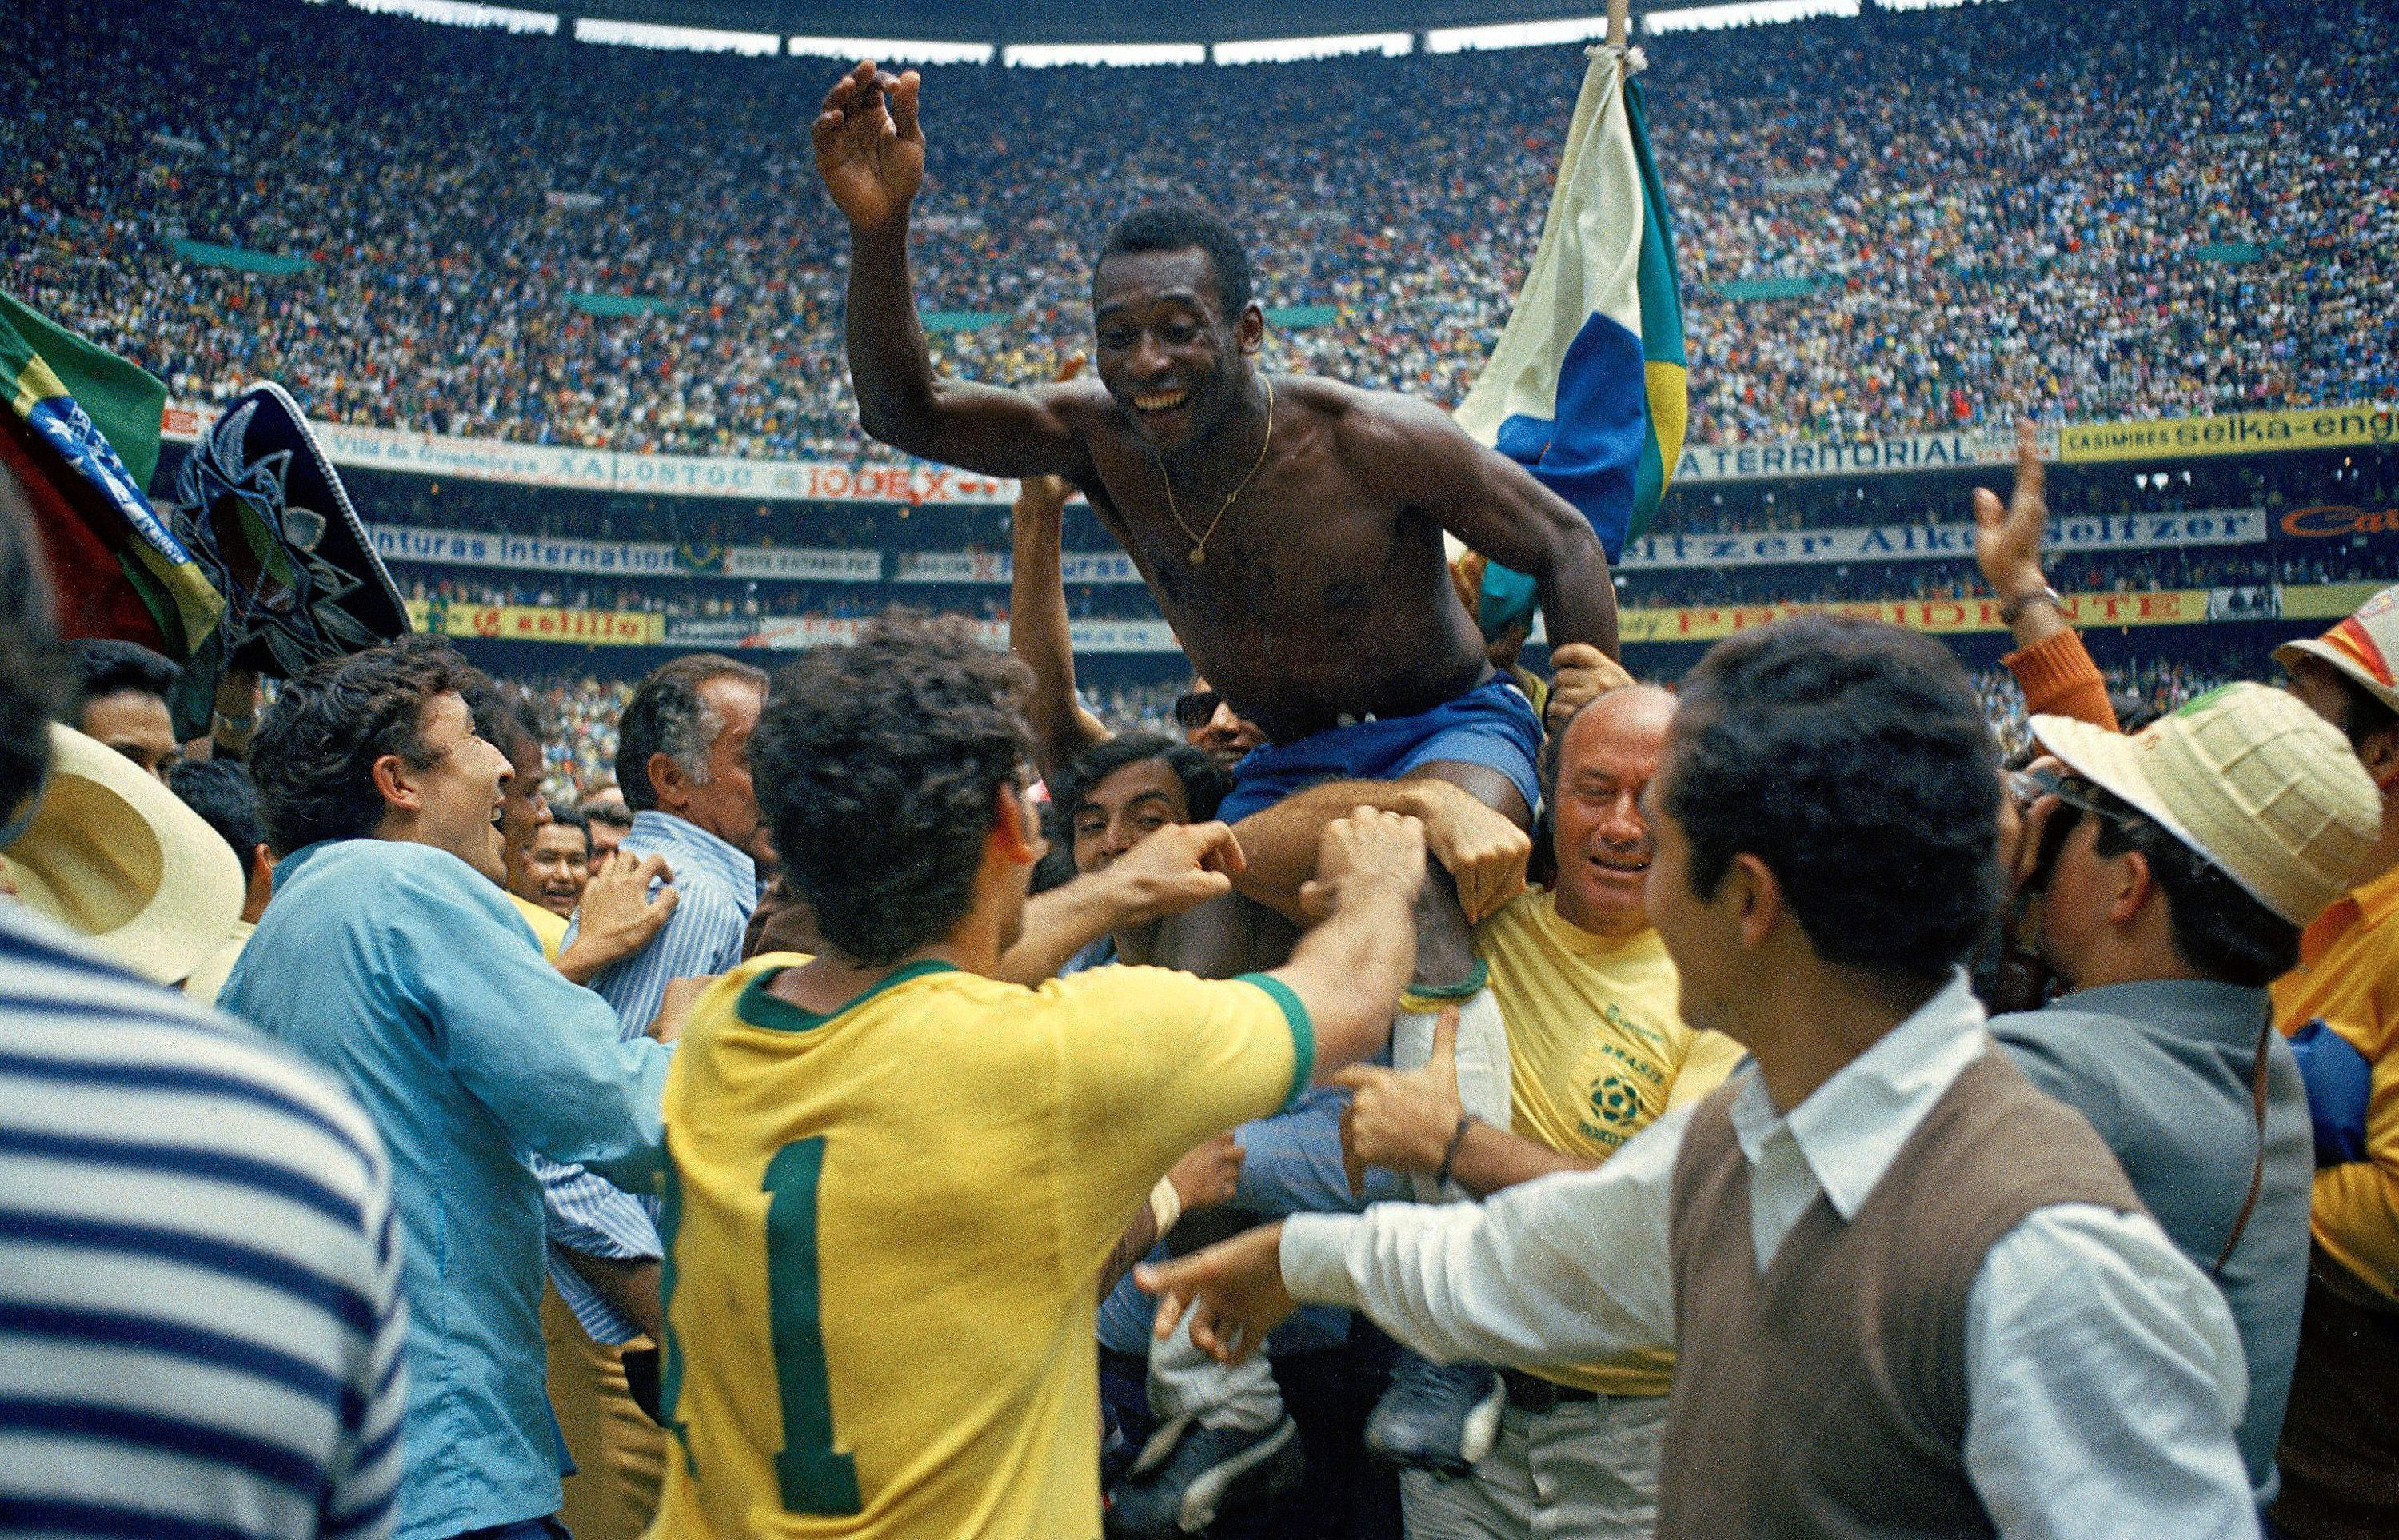 Will Generation Z Forget About Pelé?